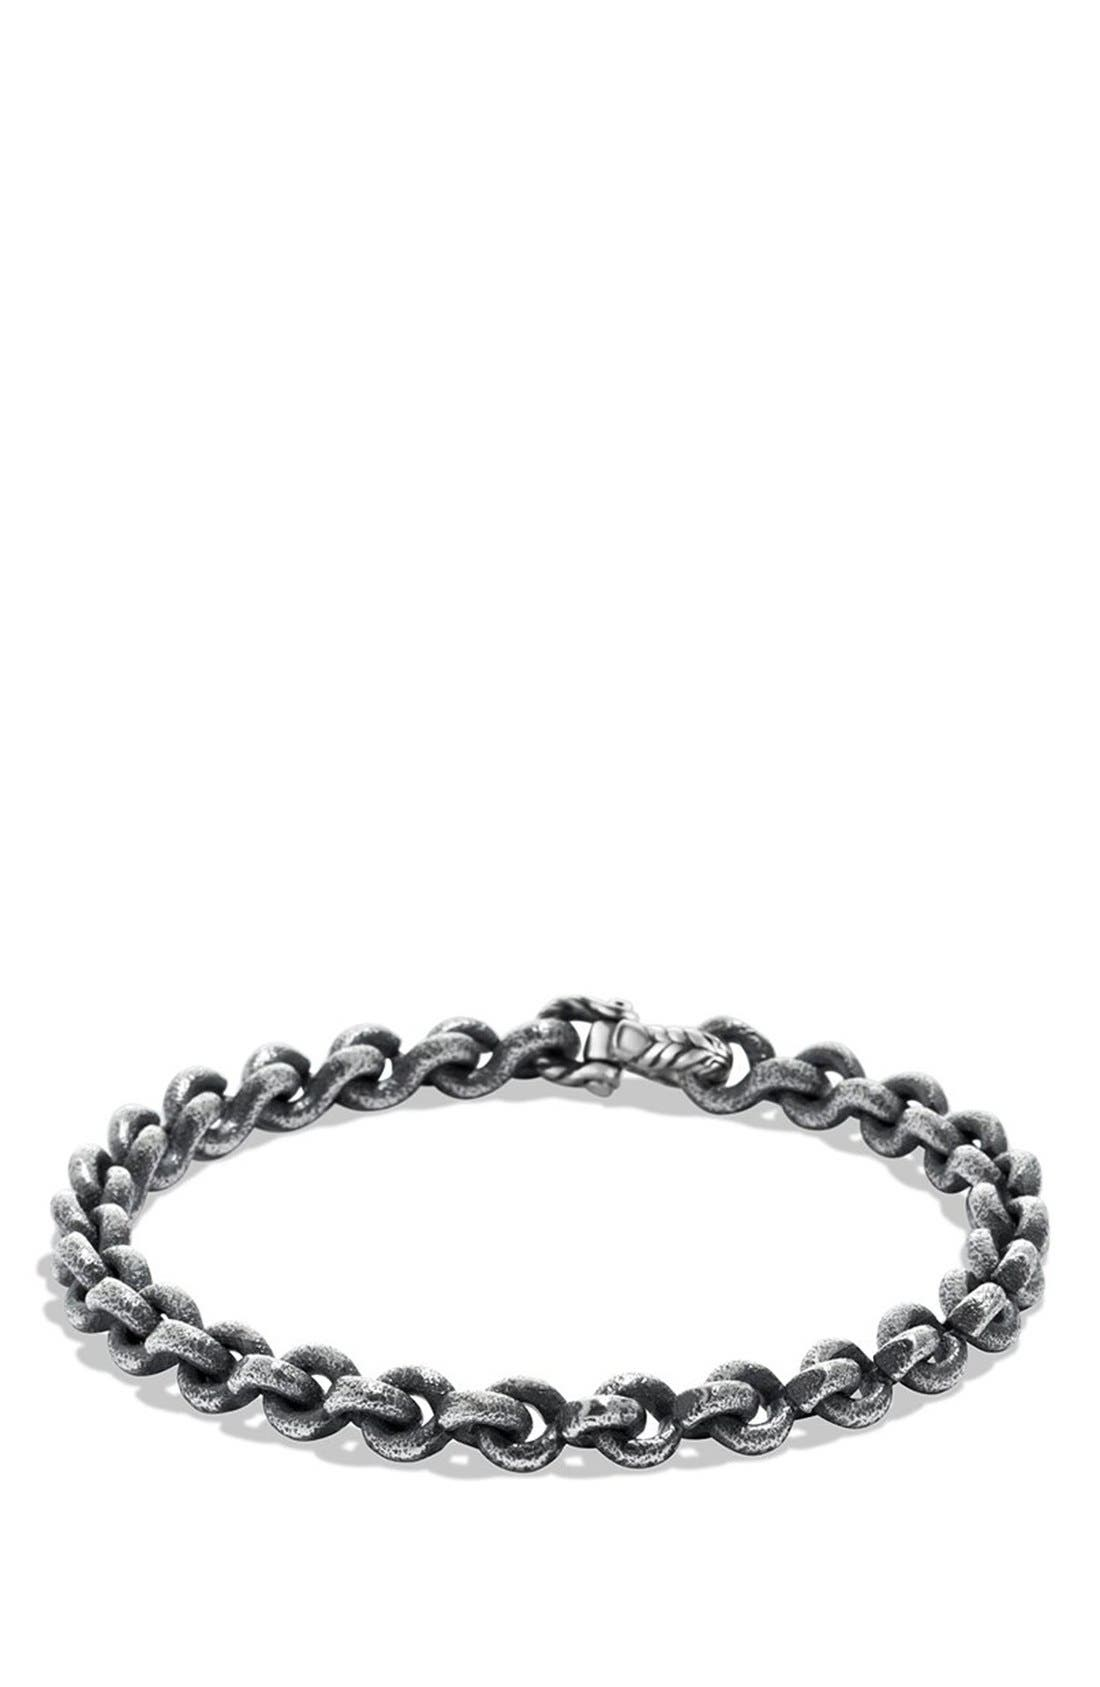 'Petrvs' Chain Bracelet,                             Main thumbnail 1, color,                             Silver